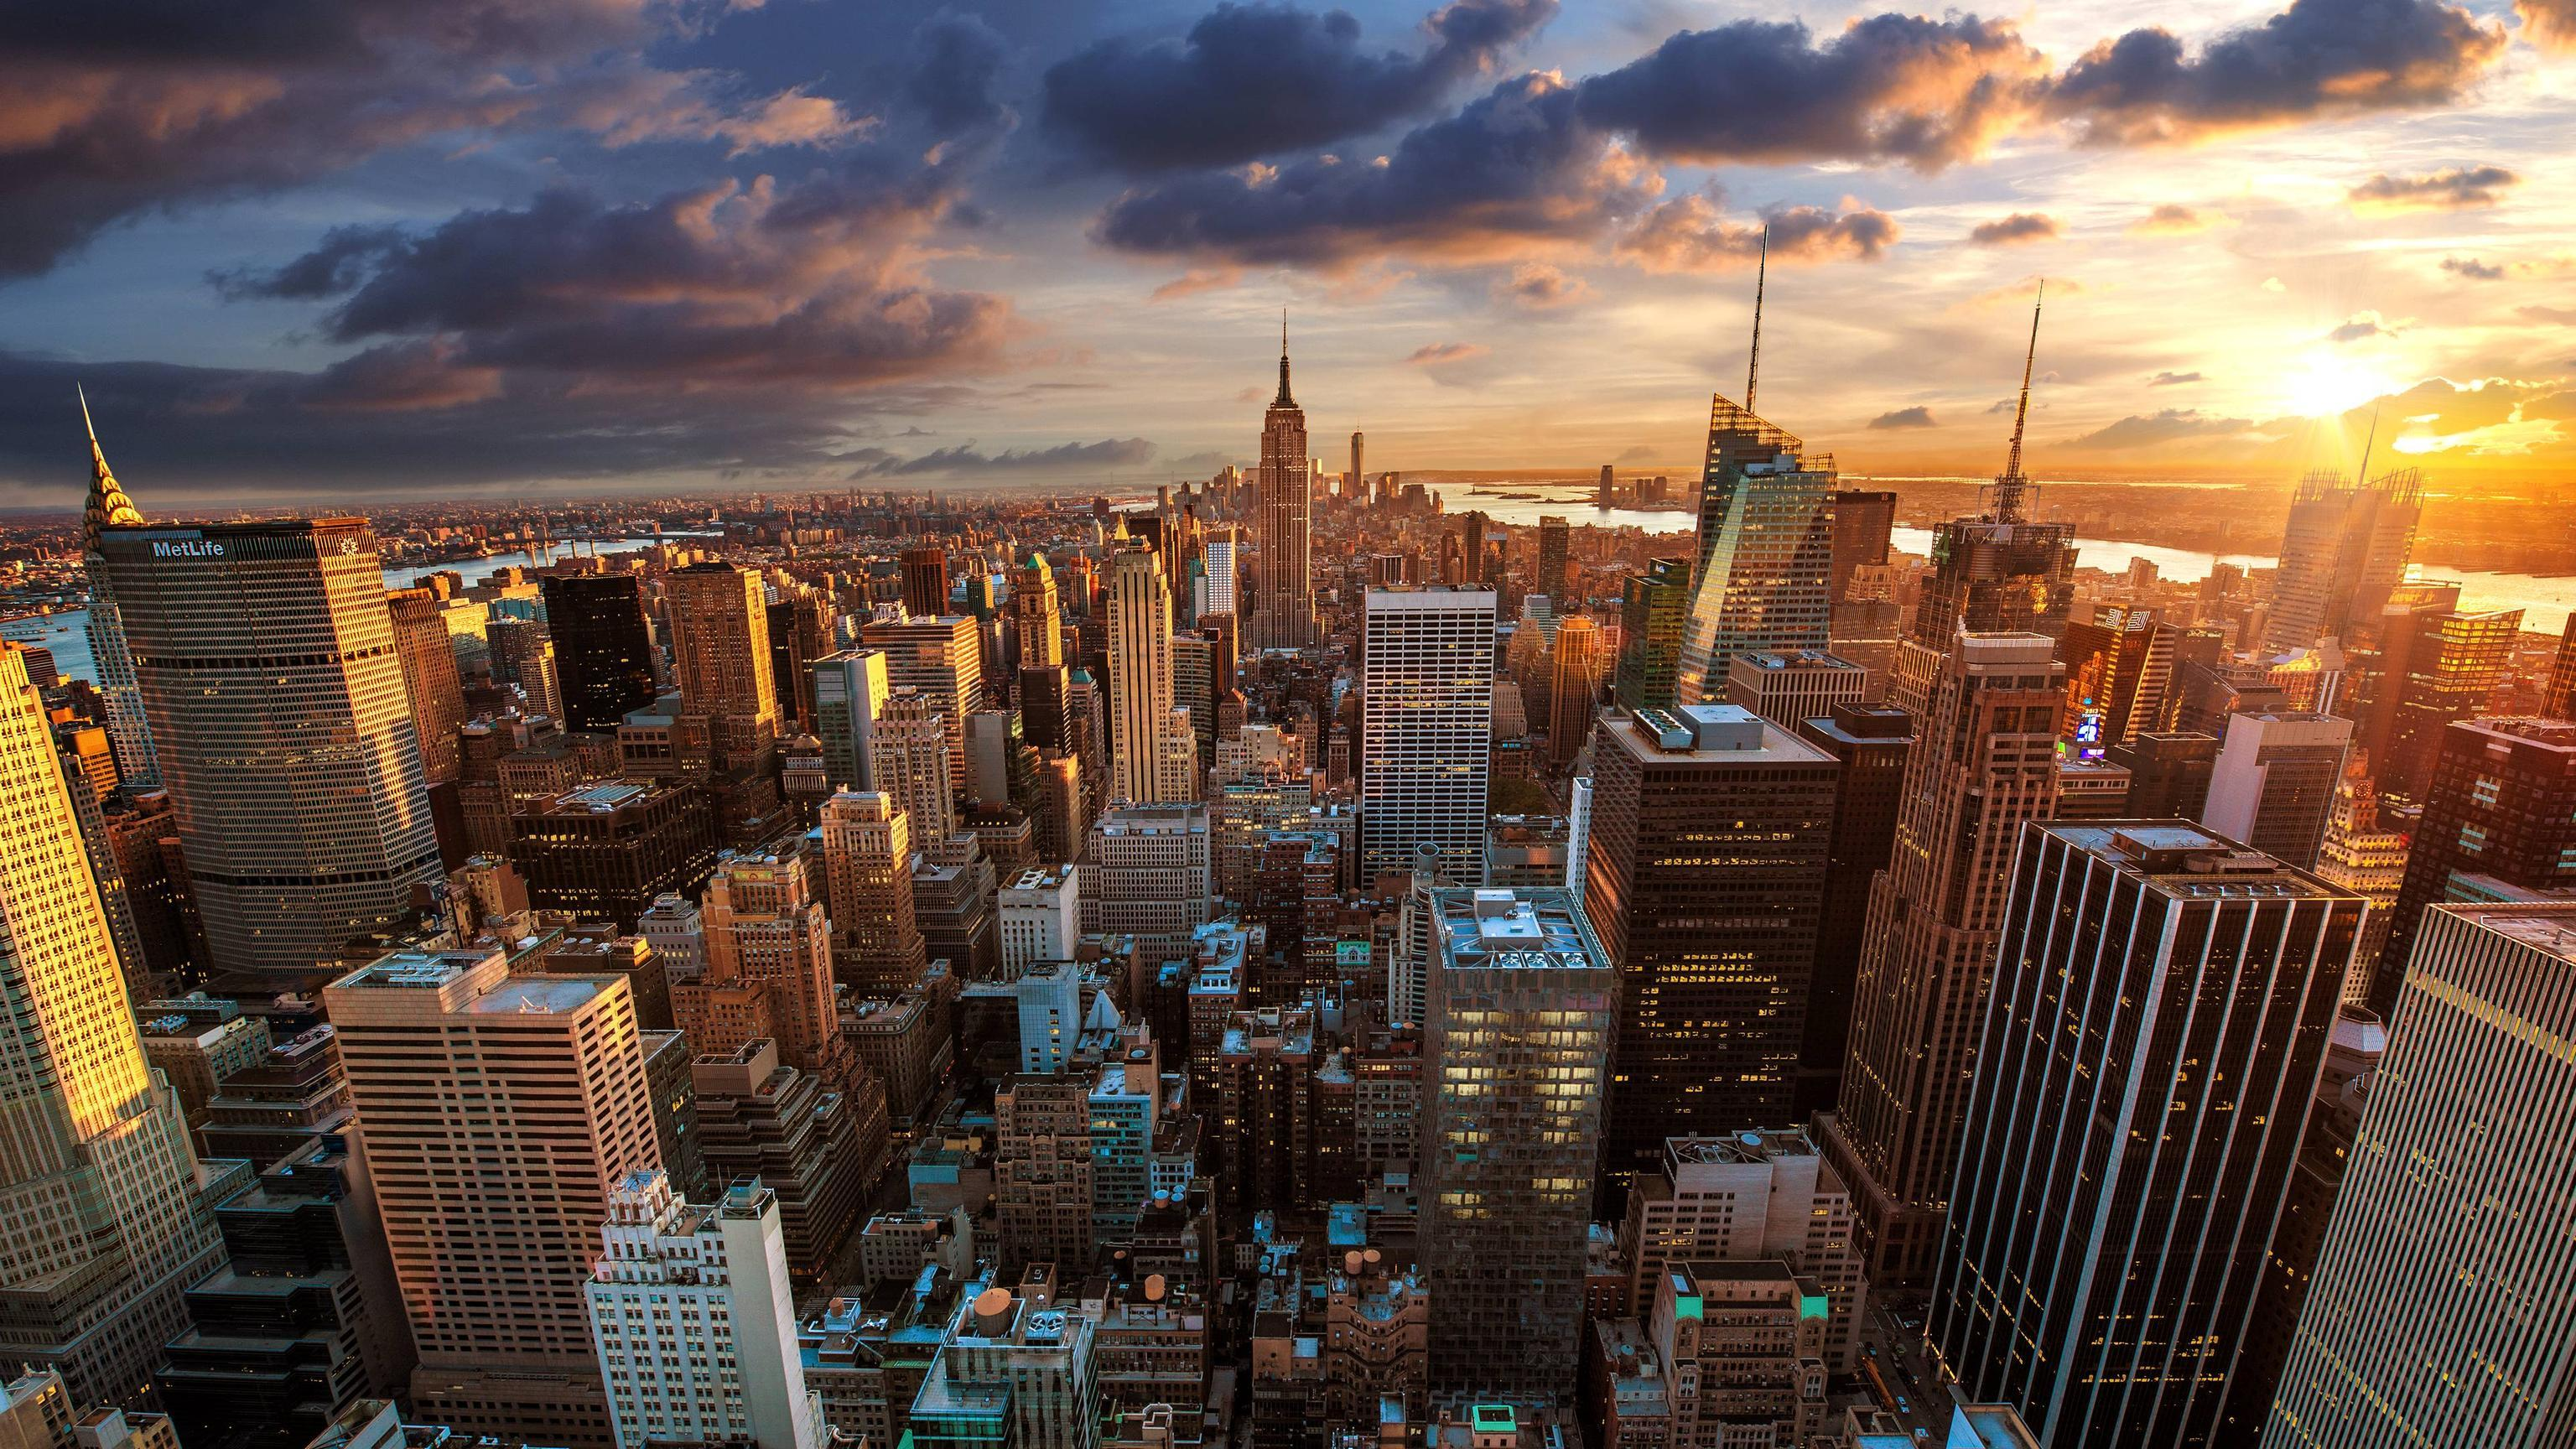 Download New York City Wallpaper Hd Backgrounds Download